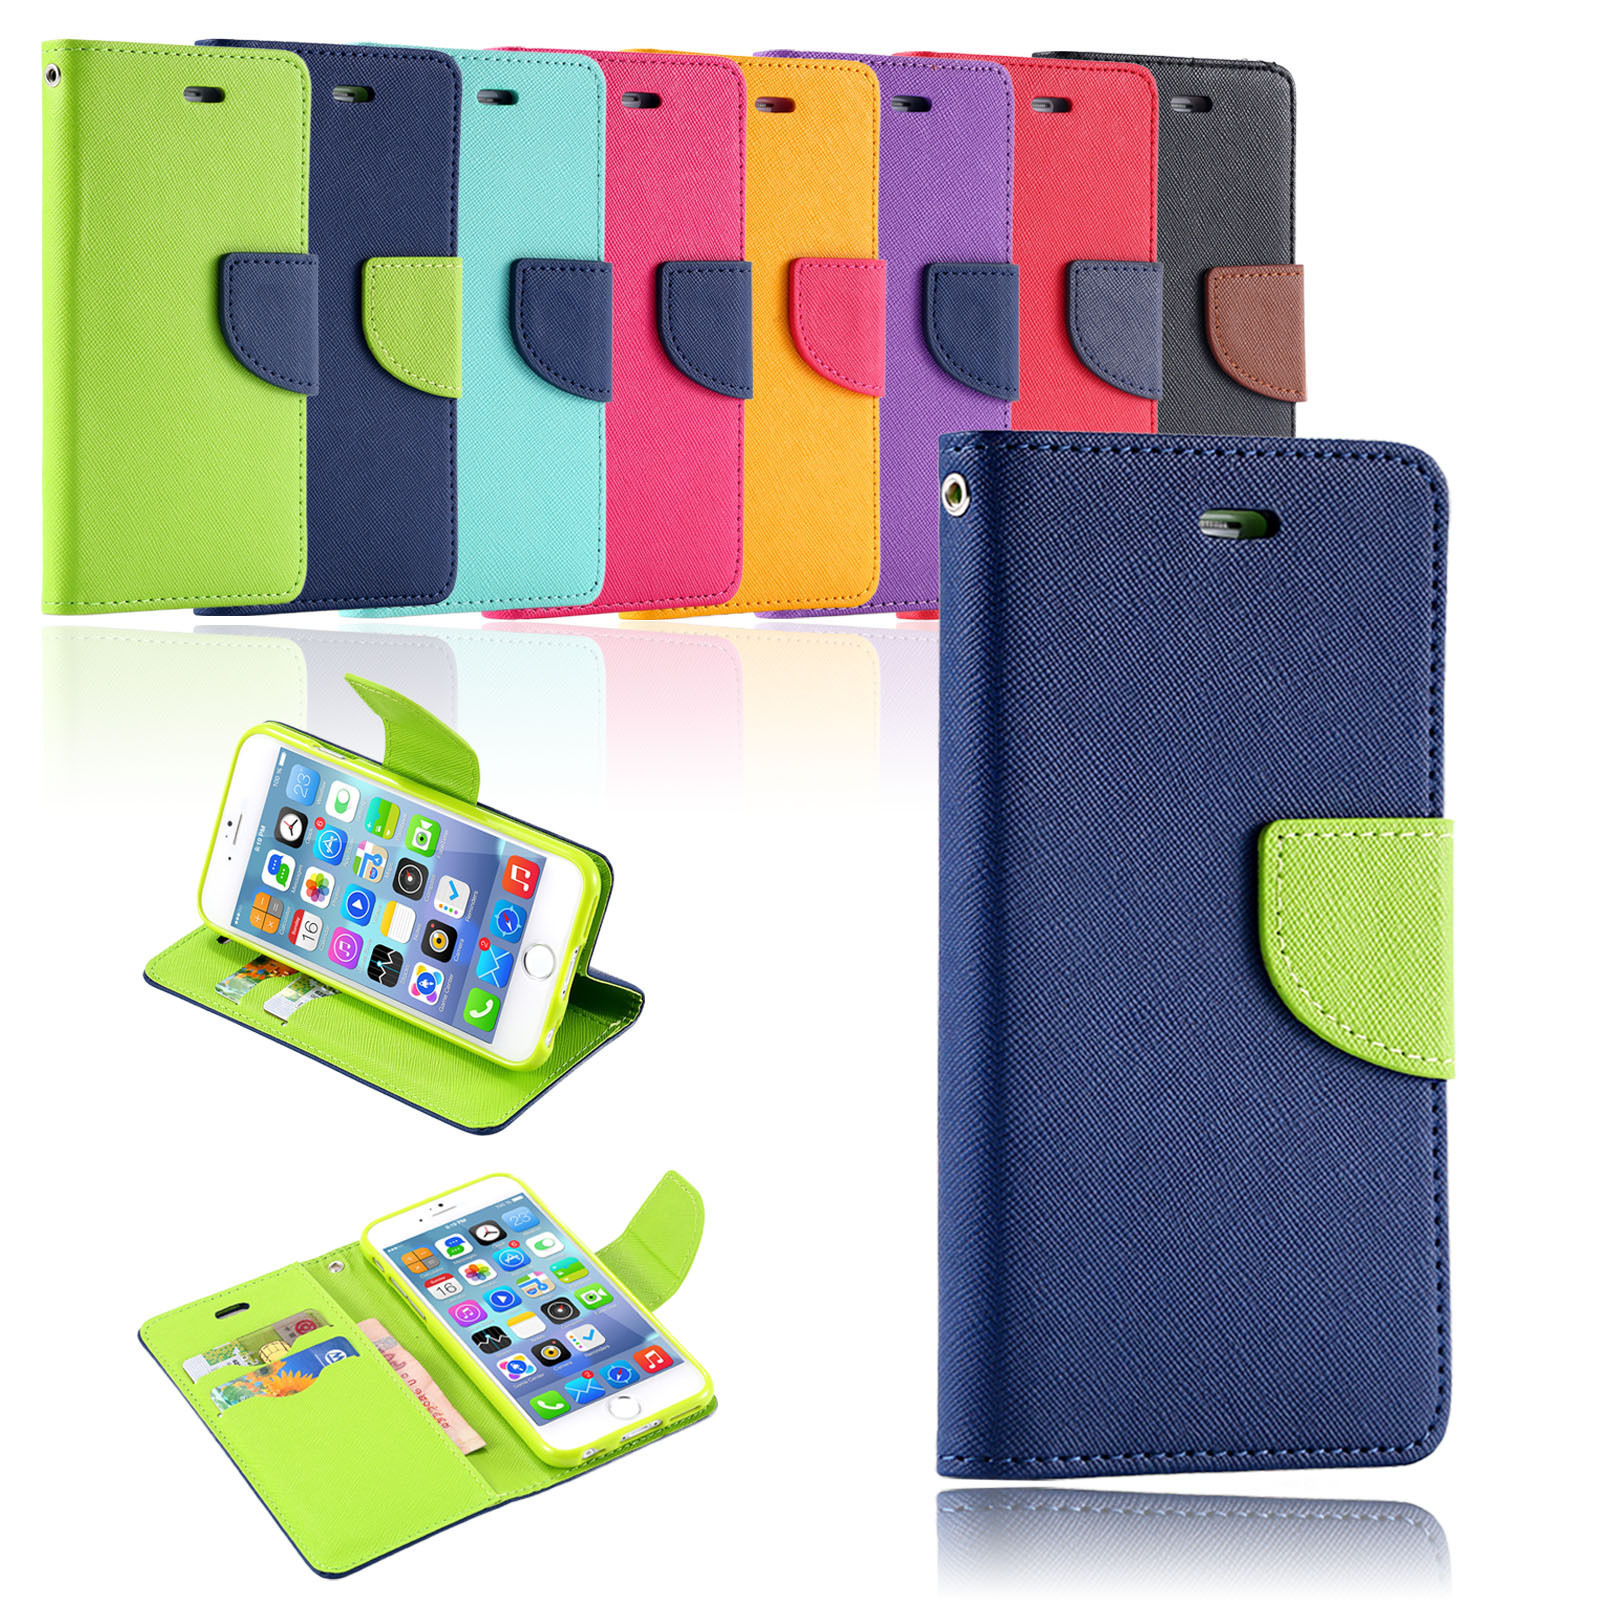 Korean Version Hit Color Leather Gel Wallet  Cover Case For iPhone 6